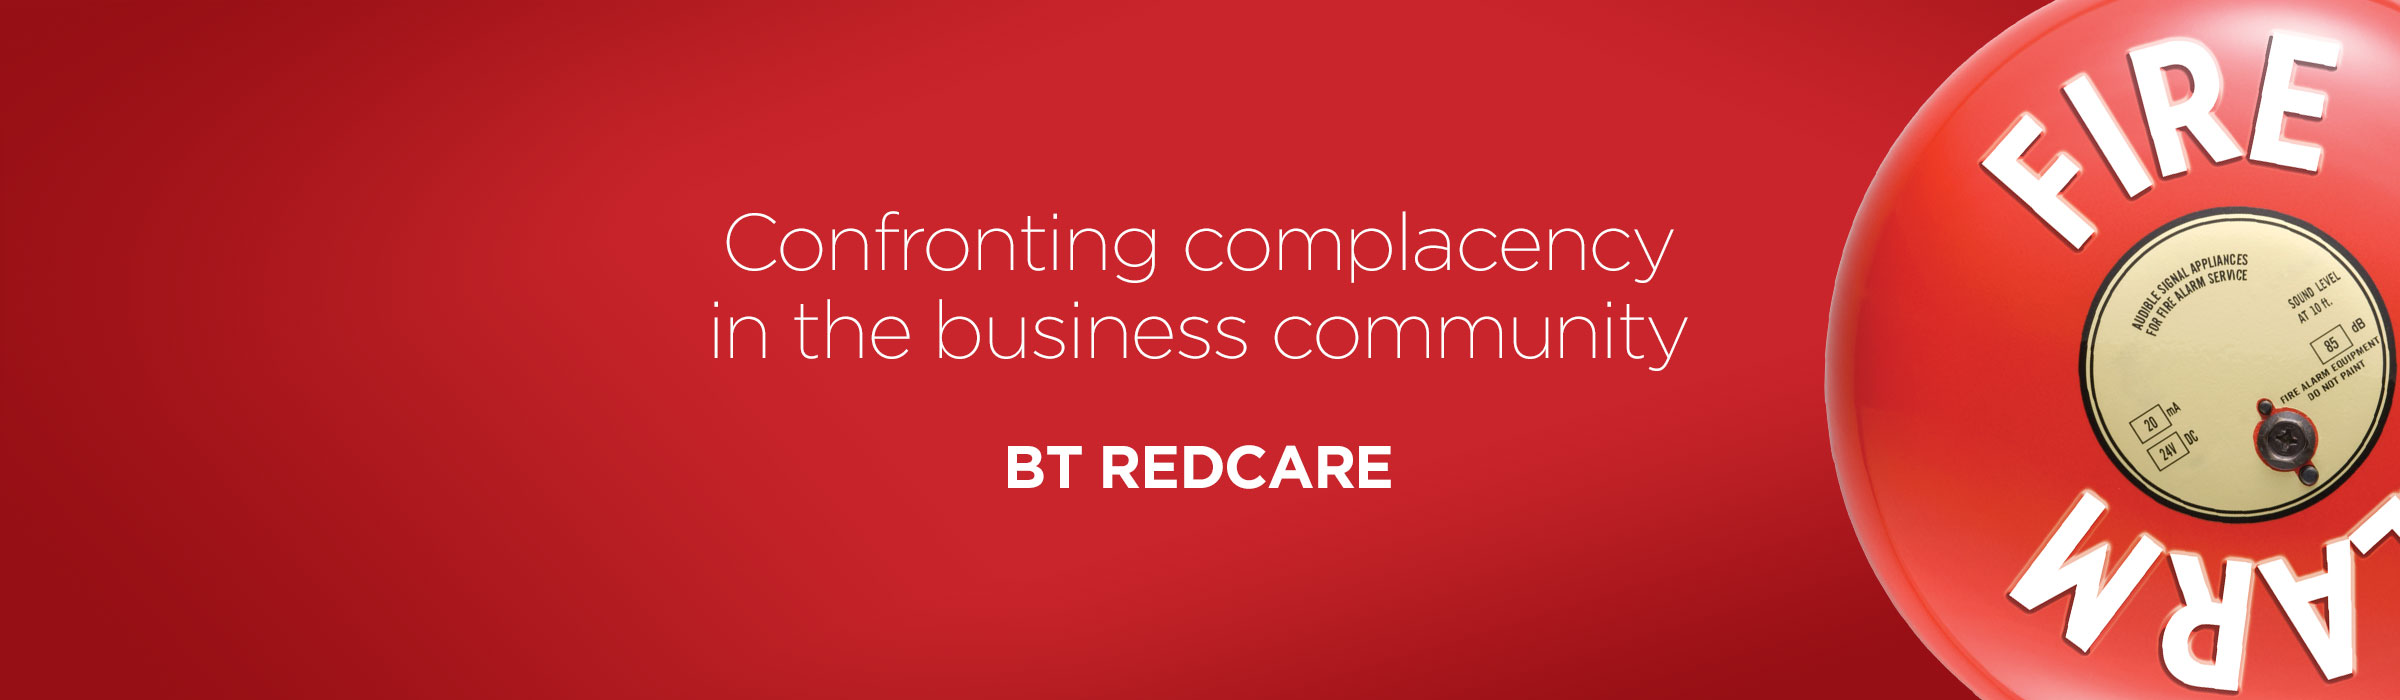 BT Redcare – Confronting complacency in the business community